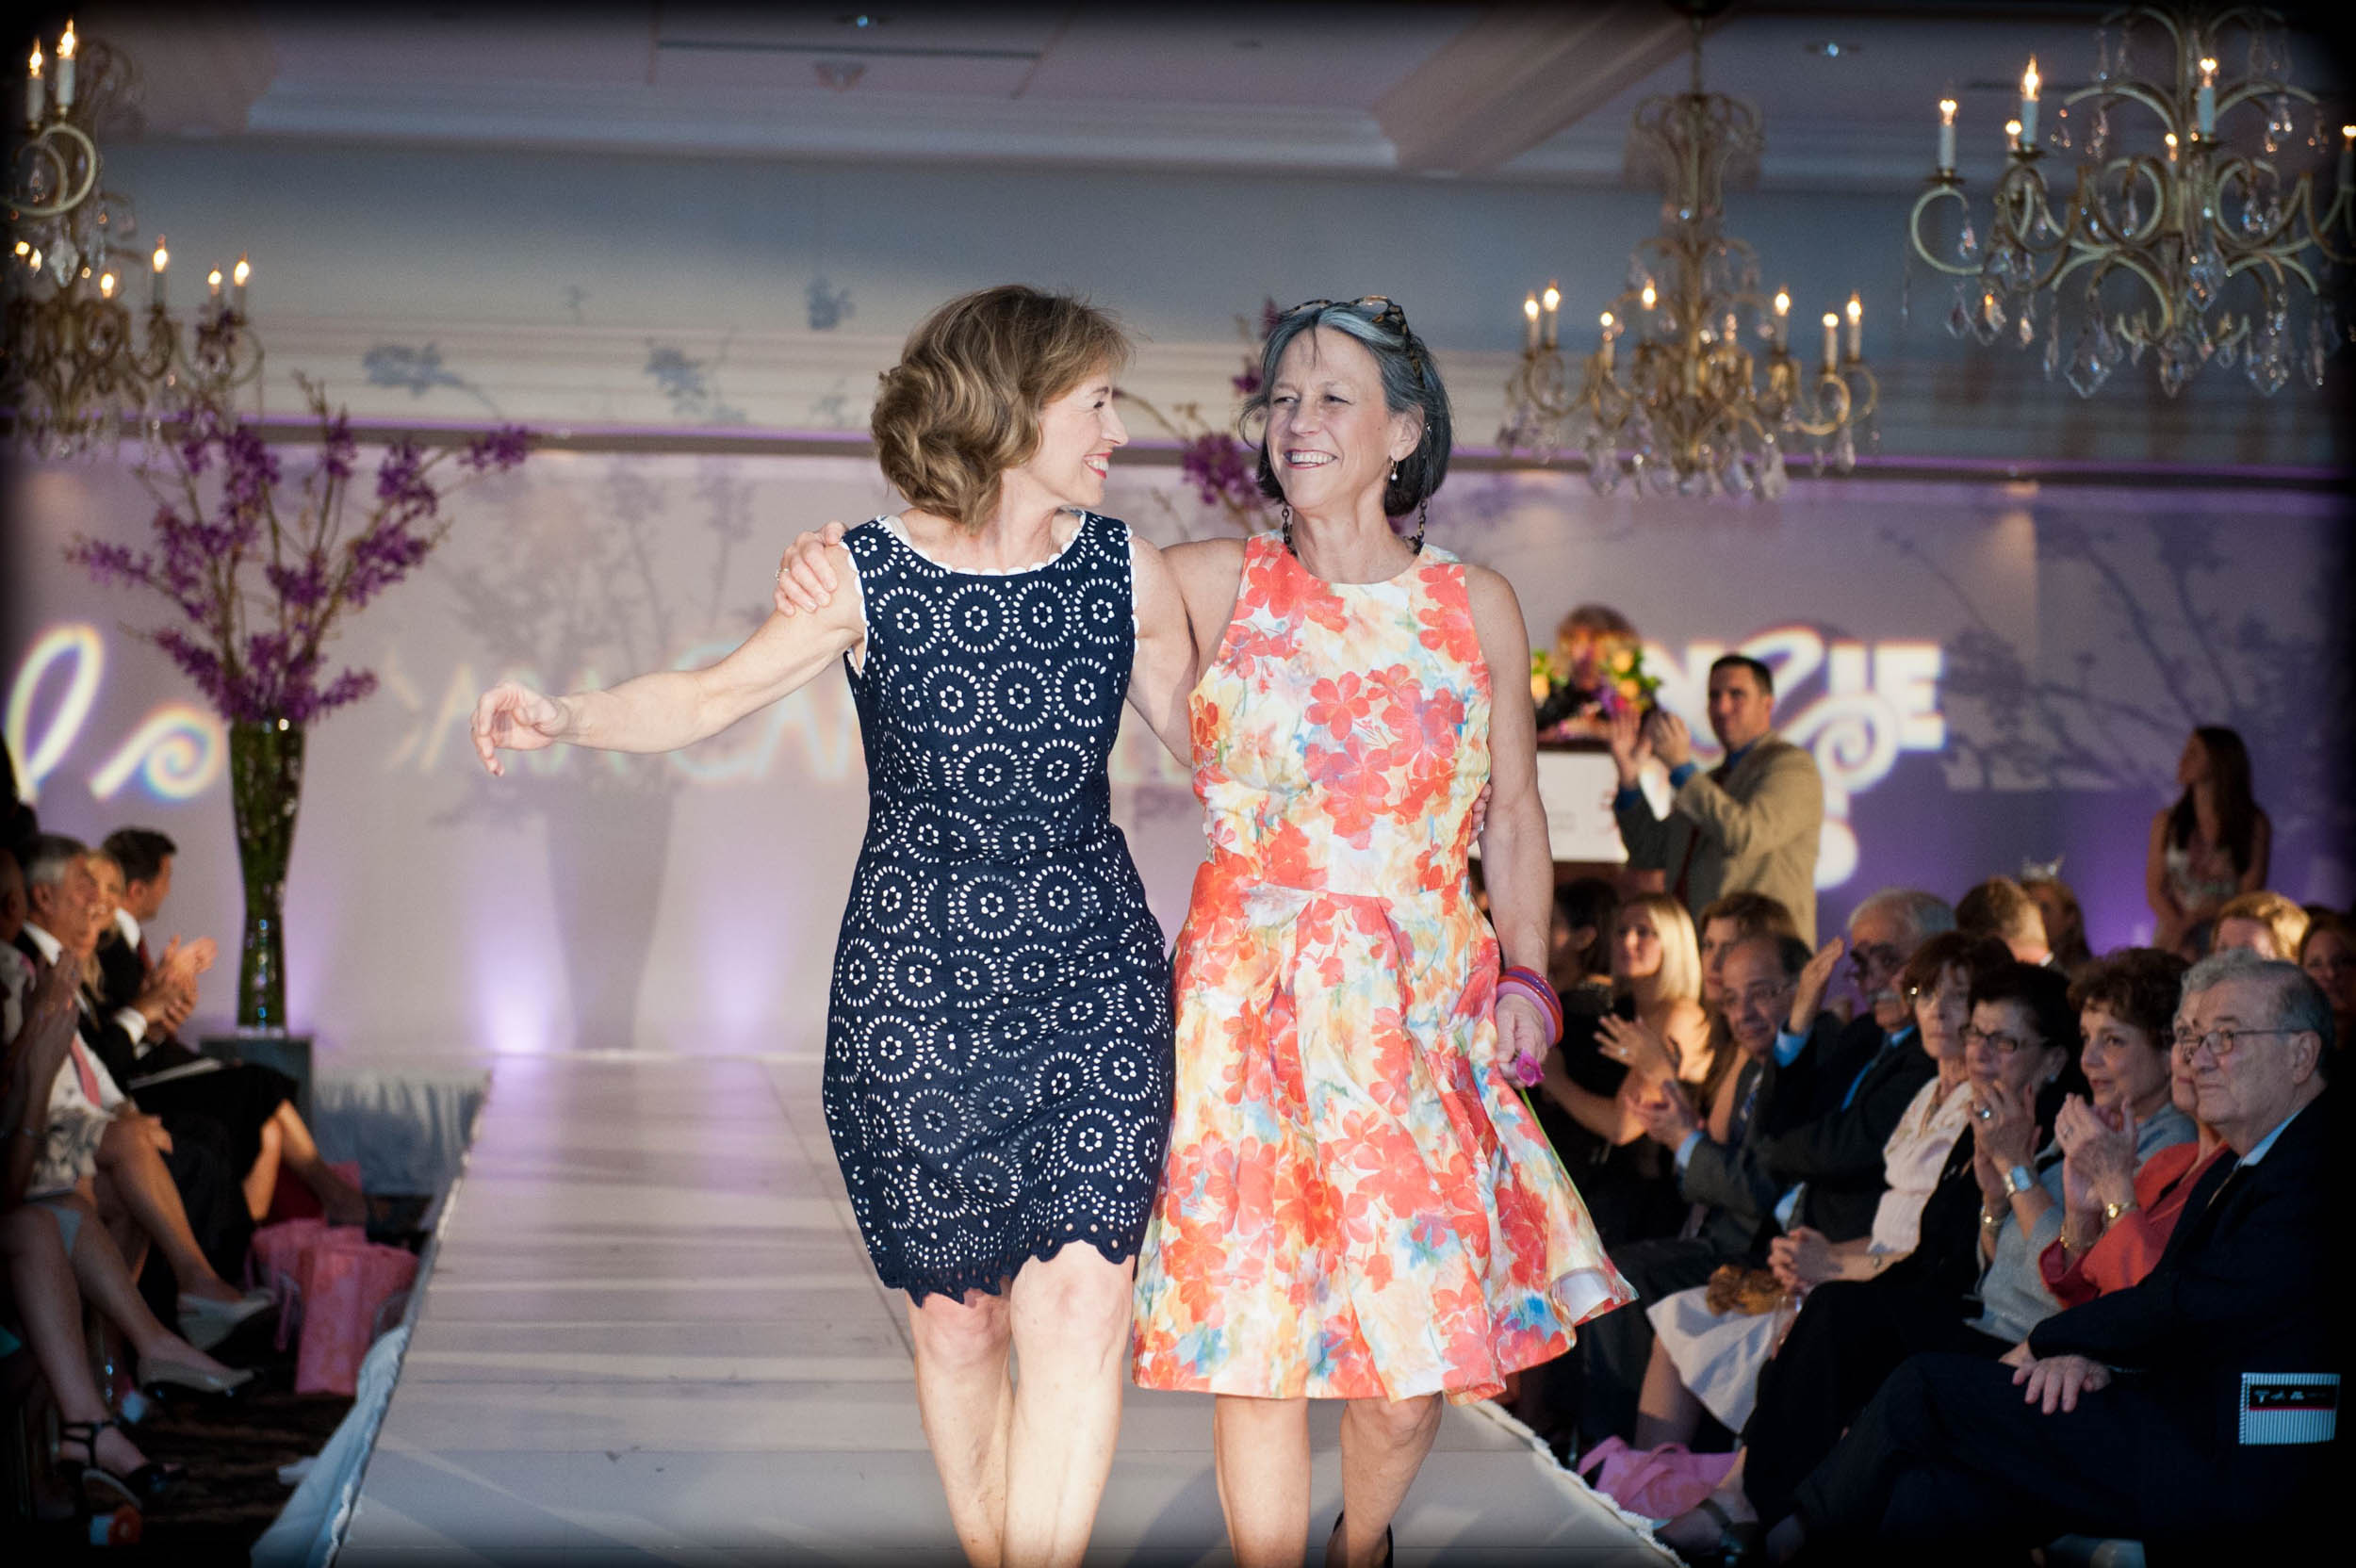 Maura Wayman Photography, Photography, Corporate Photography,Massachusetts, Boston, Metro West, events, Corporate events, Photographer, Functions, Parties, Fundraisers,Fashion show, Wellesley Country Club, Sarah Campbell, St Judes, Dress for a cause, runway, floral,